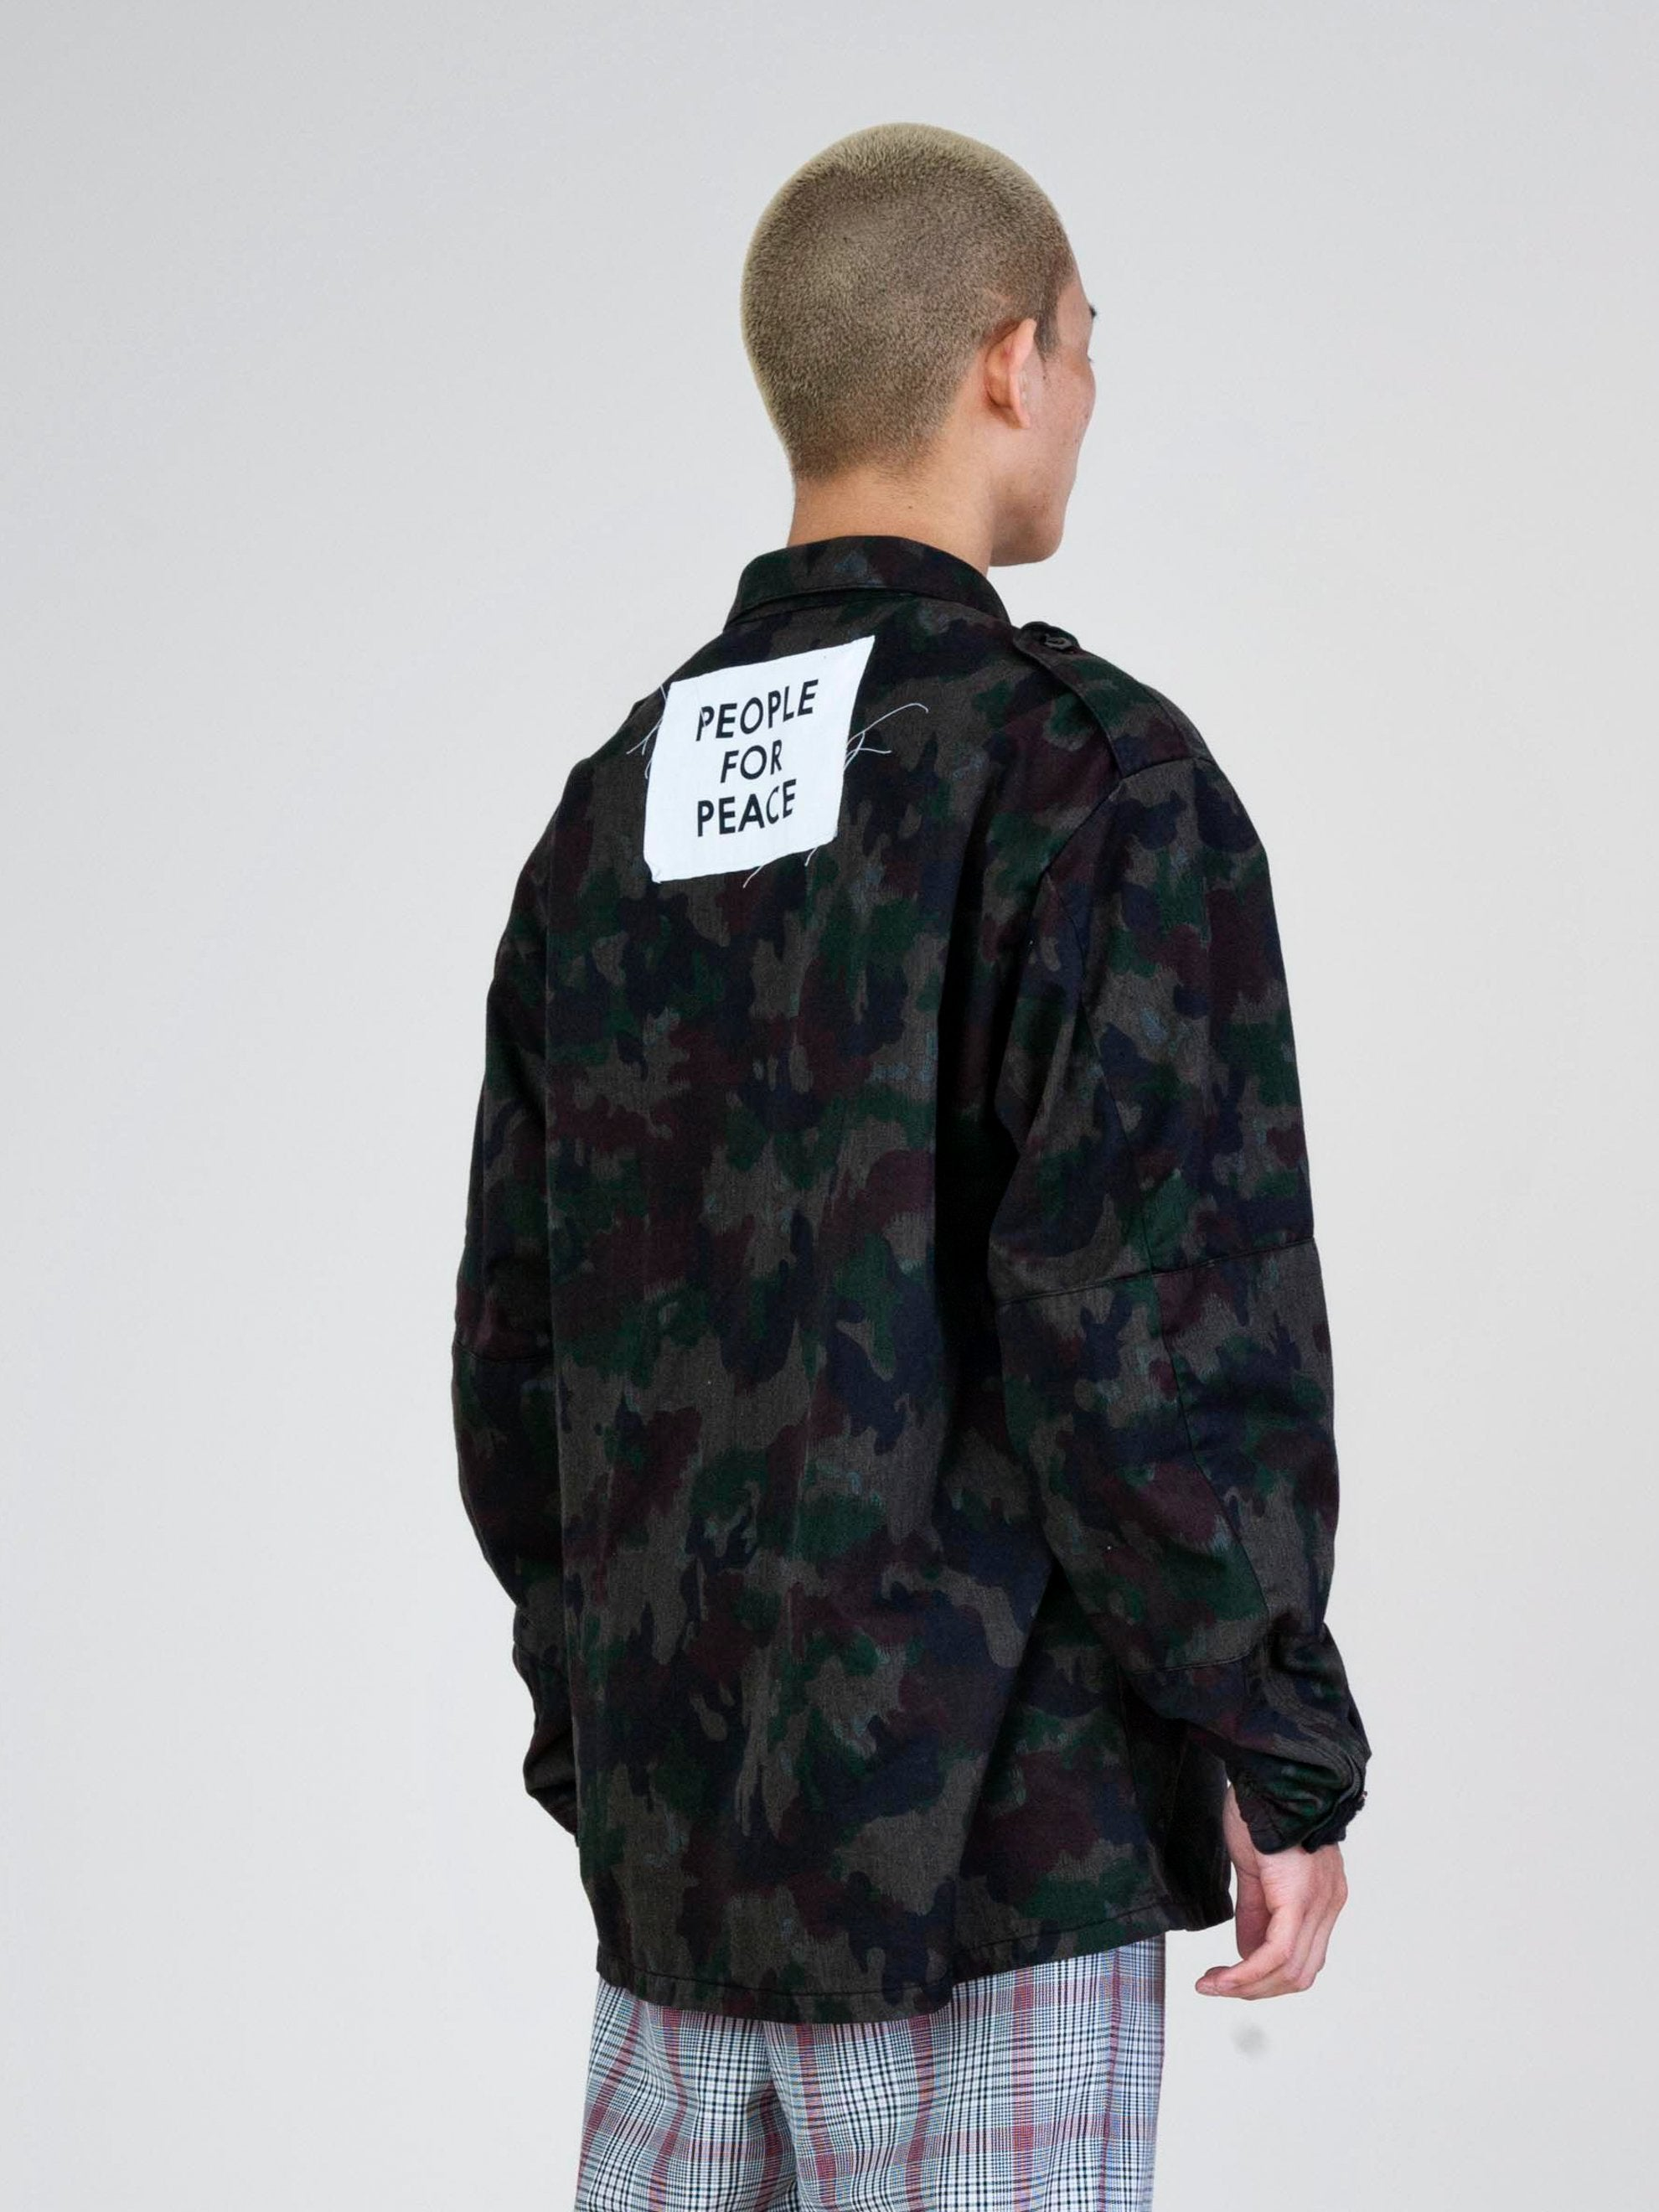 Blue Overdyed Camo People For Peace Jacket 6